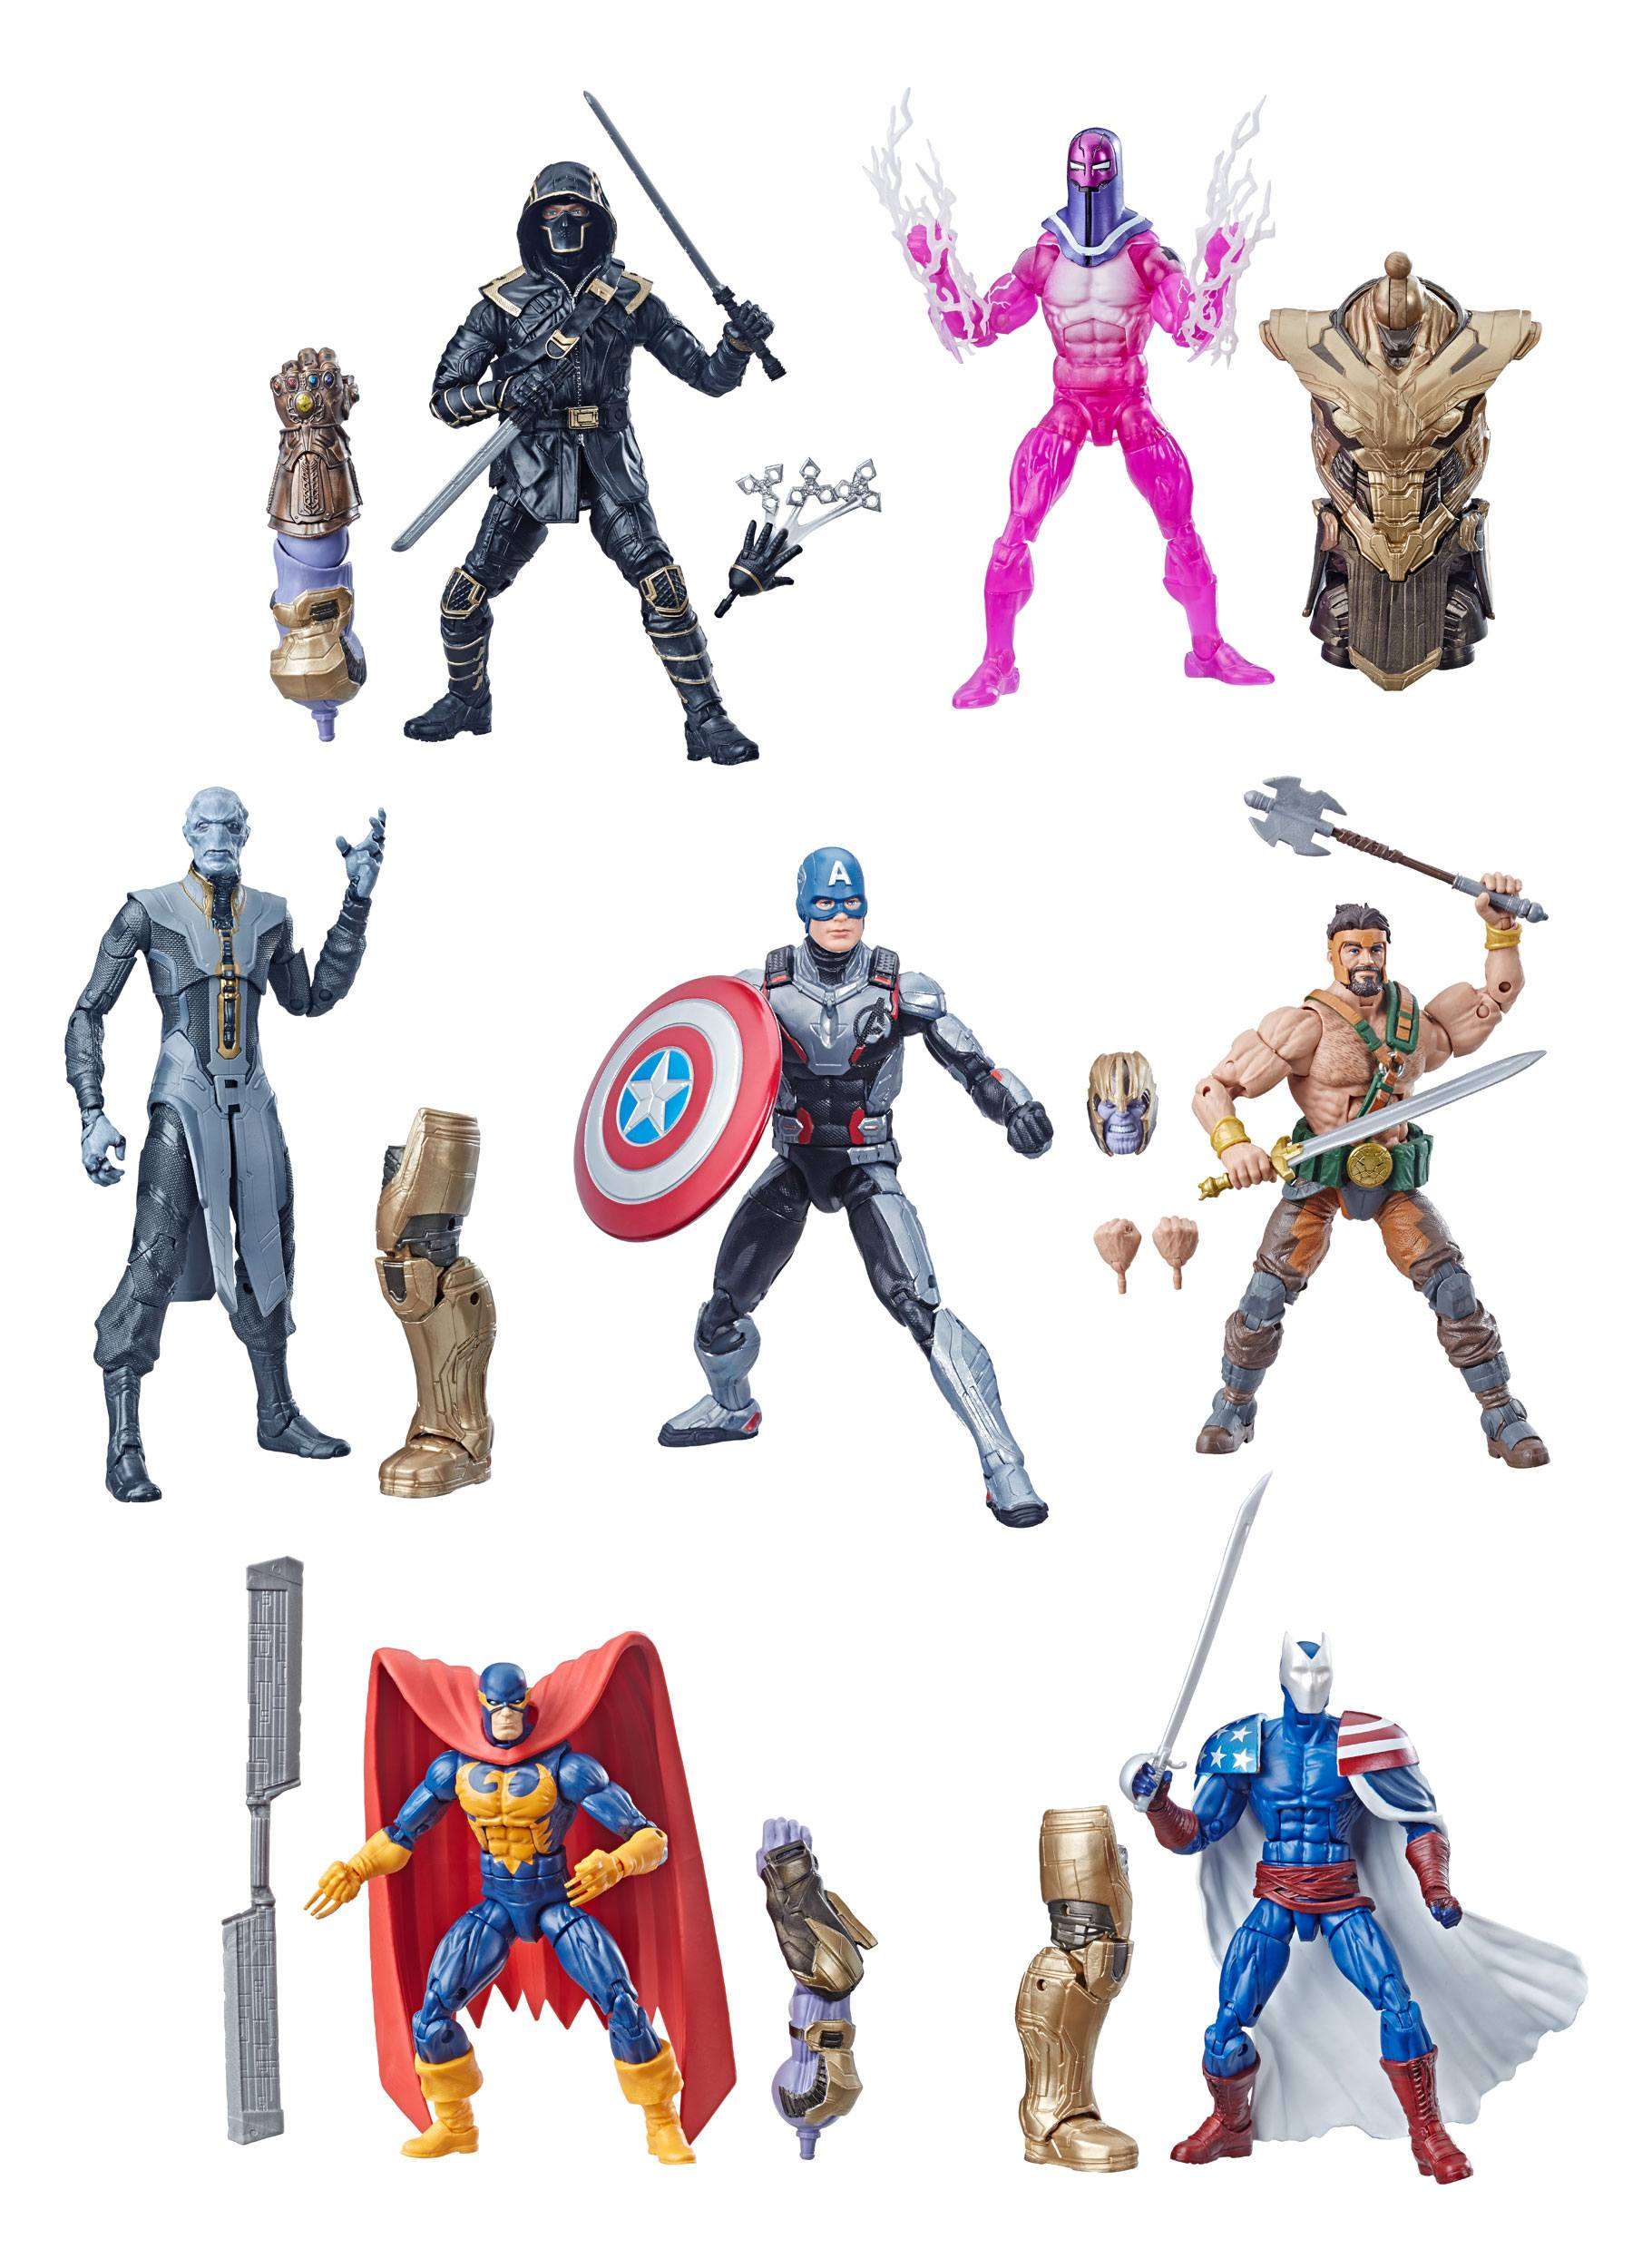 Marvel Legends Series Action Figures 15 cm Avengers 2019 Wave 1 Assortment  (8)